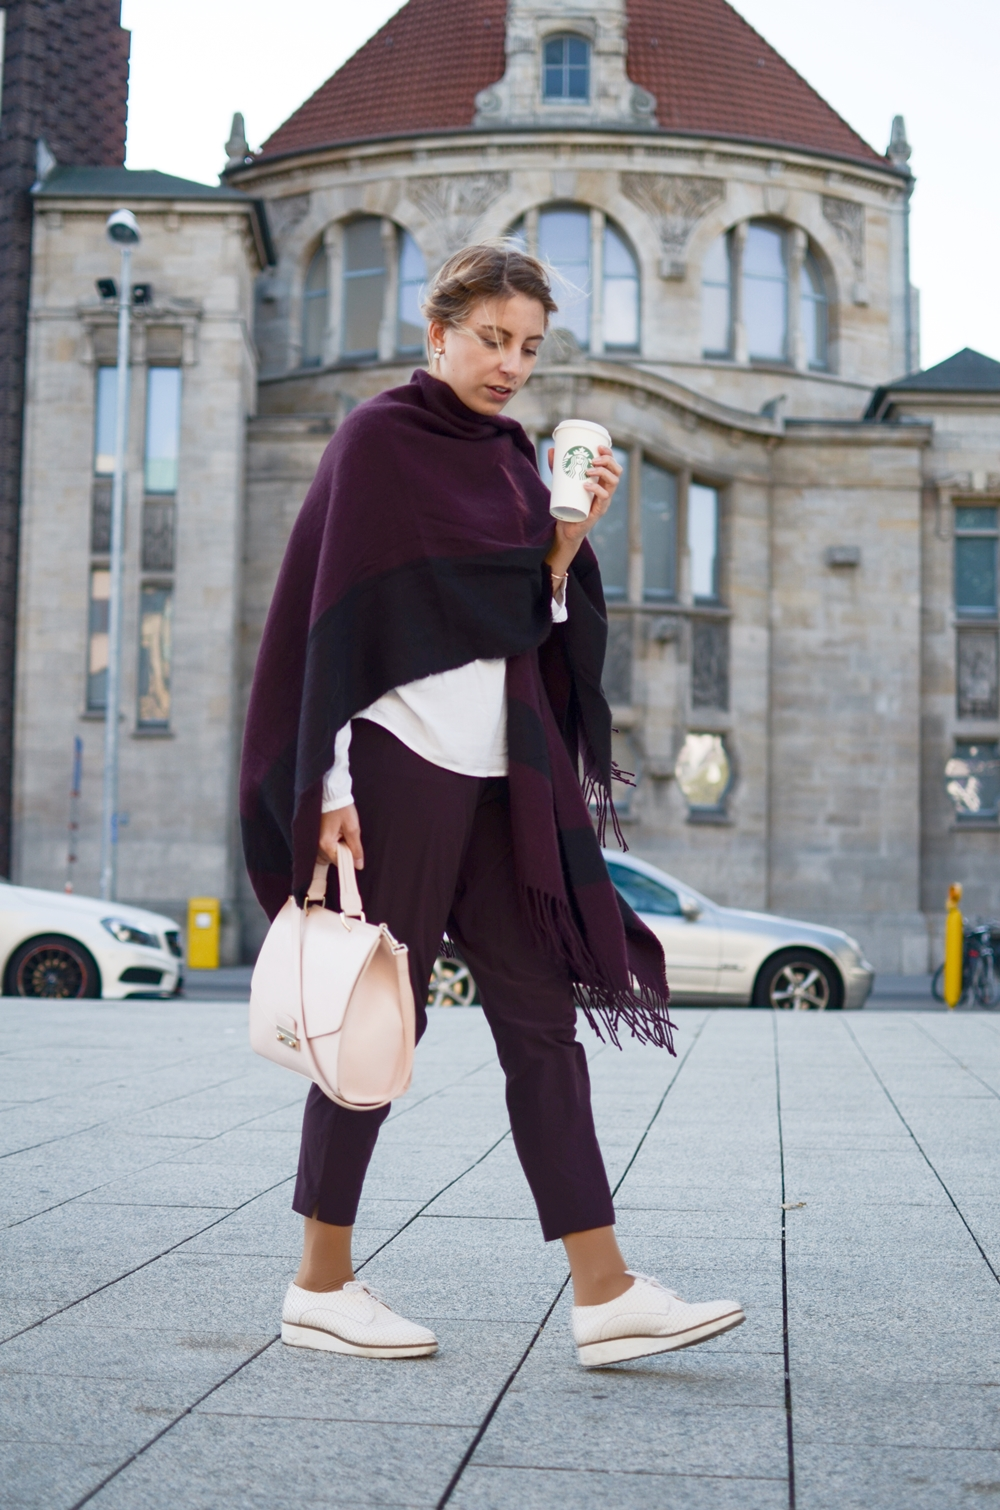 Herbstlche Kombi in Pflaumenlila mit Cape von Hallhuber, Hose von Opus und Furla Tasche | Fashion, Look, Outfit, Style, Chic | Glasschuh.com by Lea Christin | Blog aus Hannover